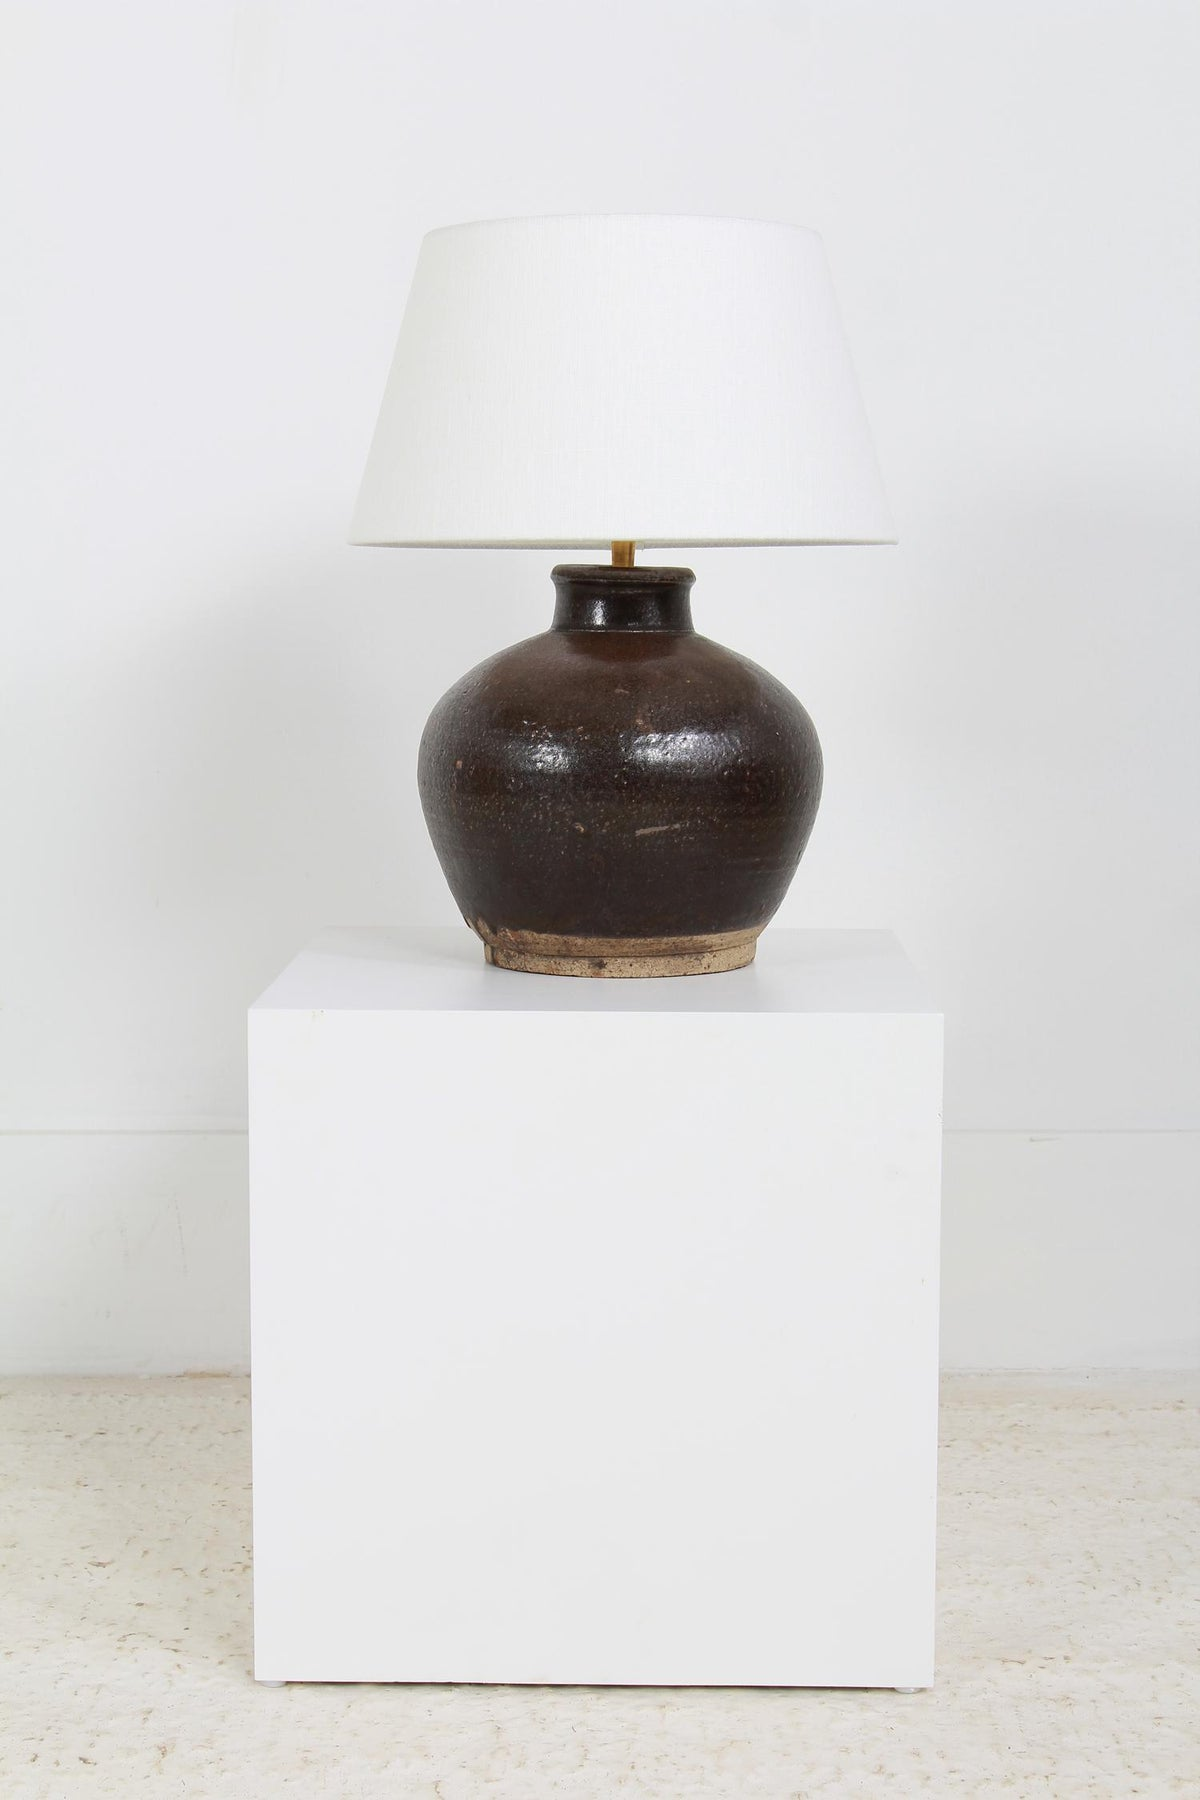 UNIQUE ANTIQUE BROWN GLAZED CERAMIC TABLE LAMP WITH LINEN SHADE